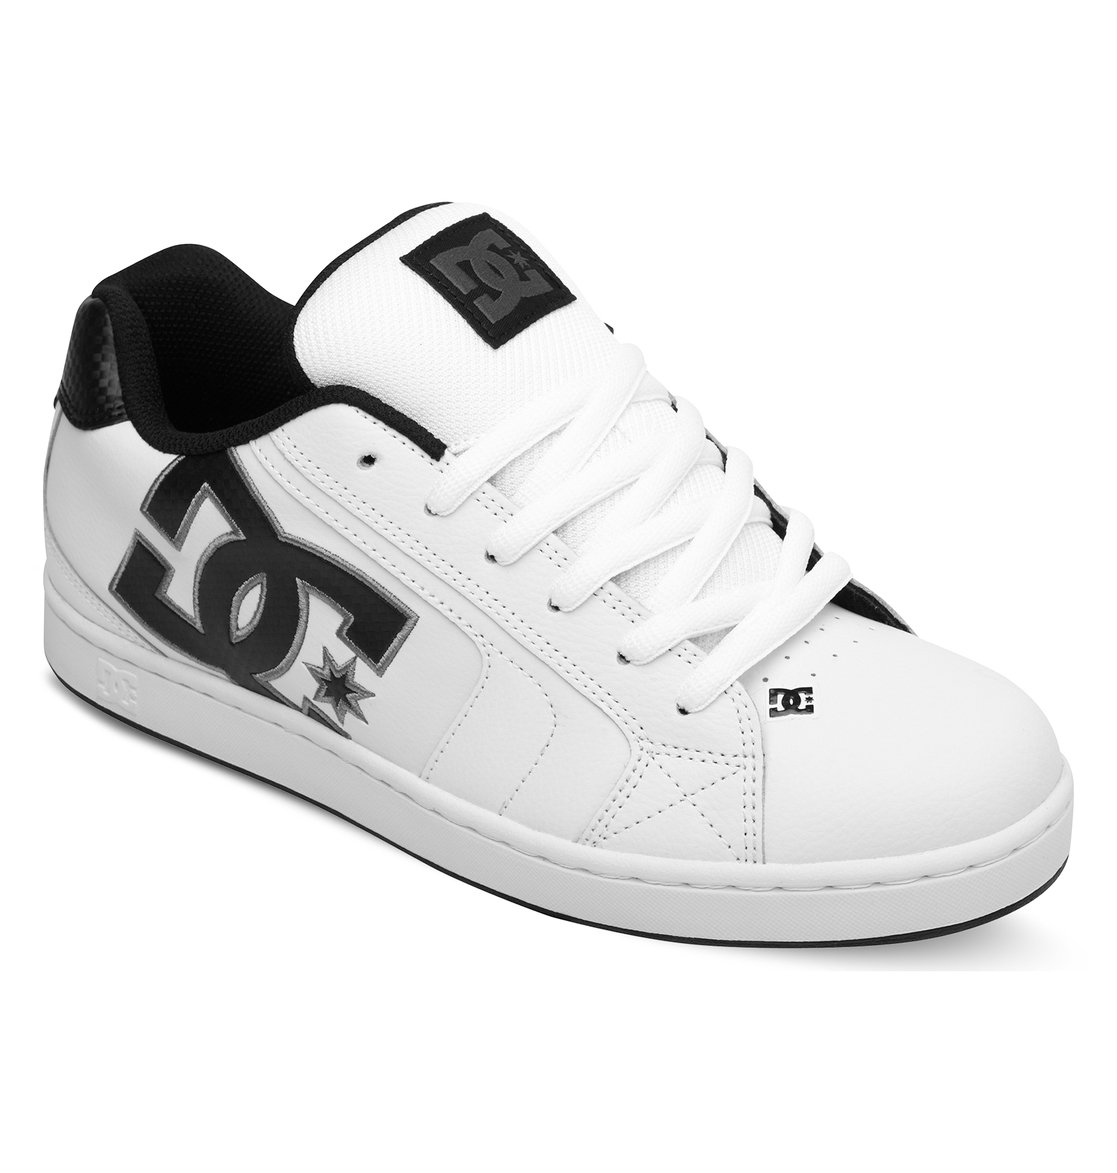 Baskets DC shoes Net VLpEyGpnB